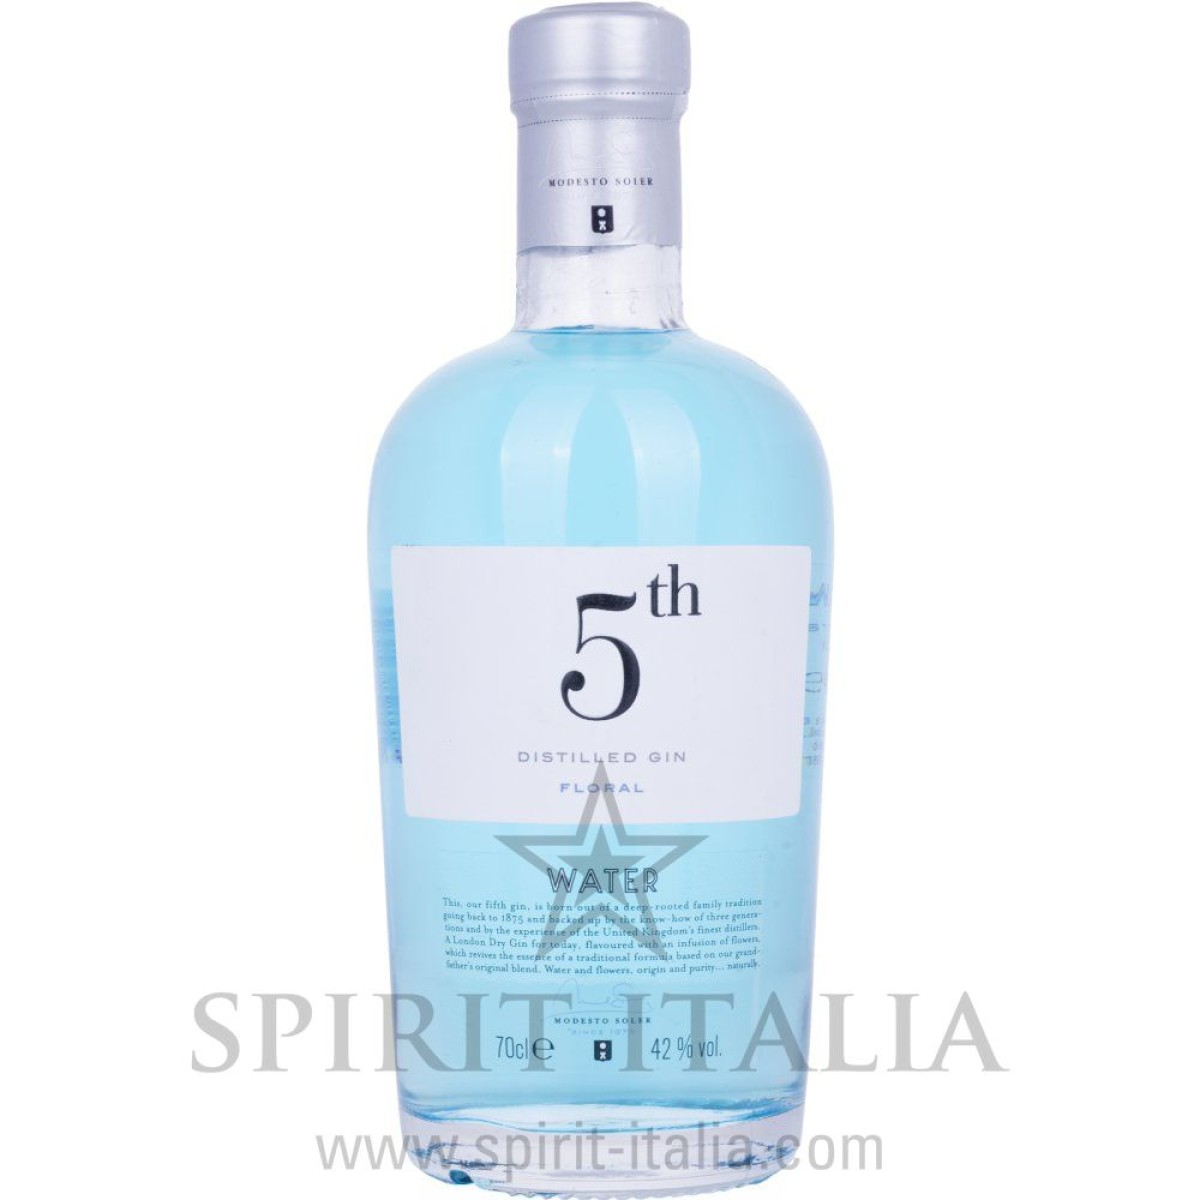 5th WATER Gin Floral